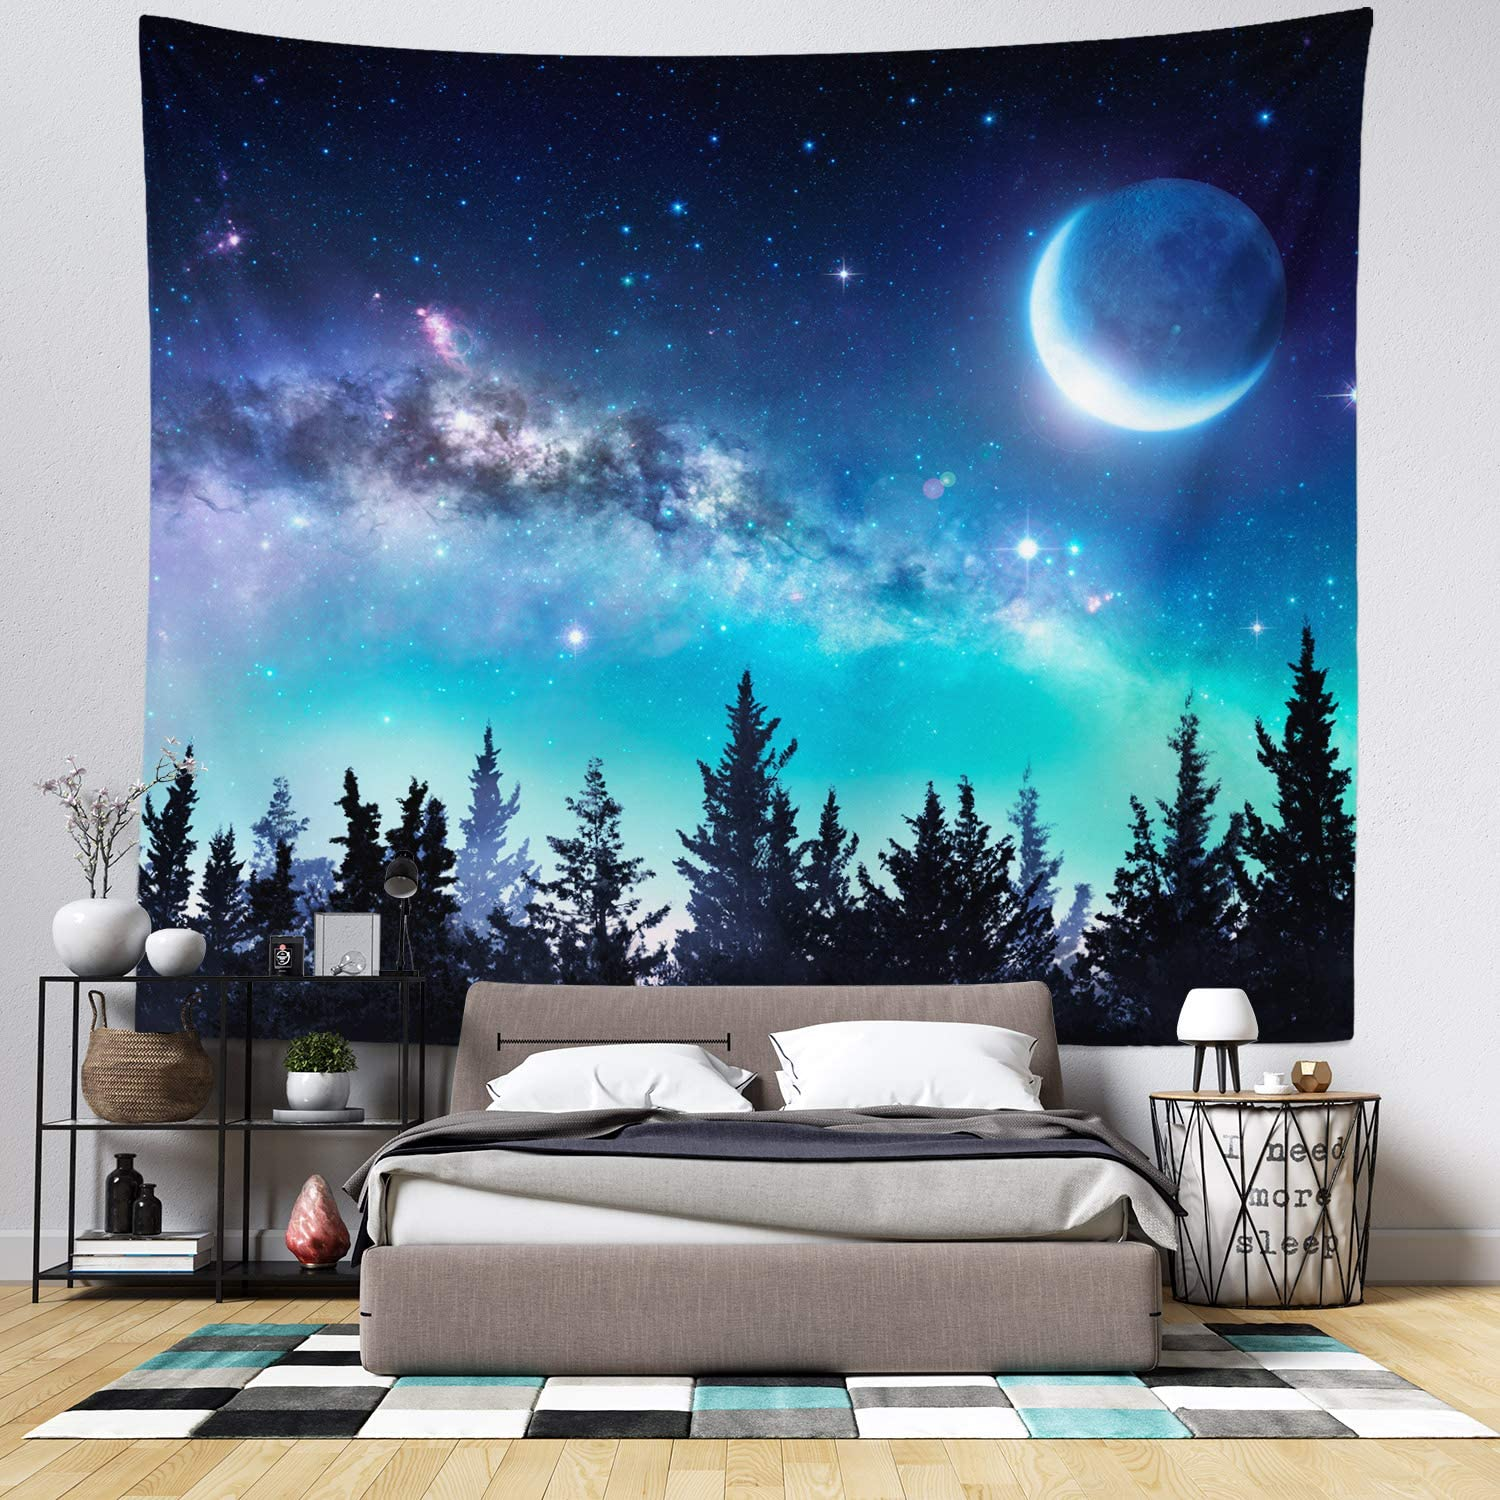 Wall Hanging Tapestry - Living Room Decor - Home Decor - Home Wall Art - Large Tapestries for Bedroom, College & Dorm (Moon and Night Sky Tapestry)